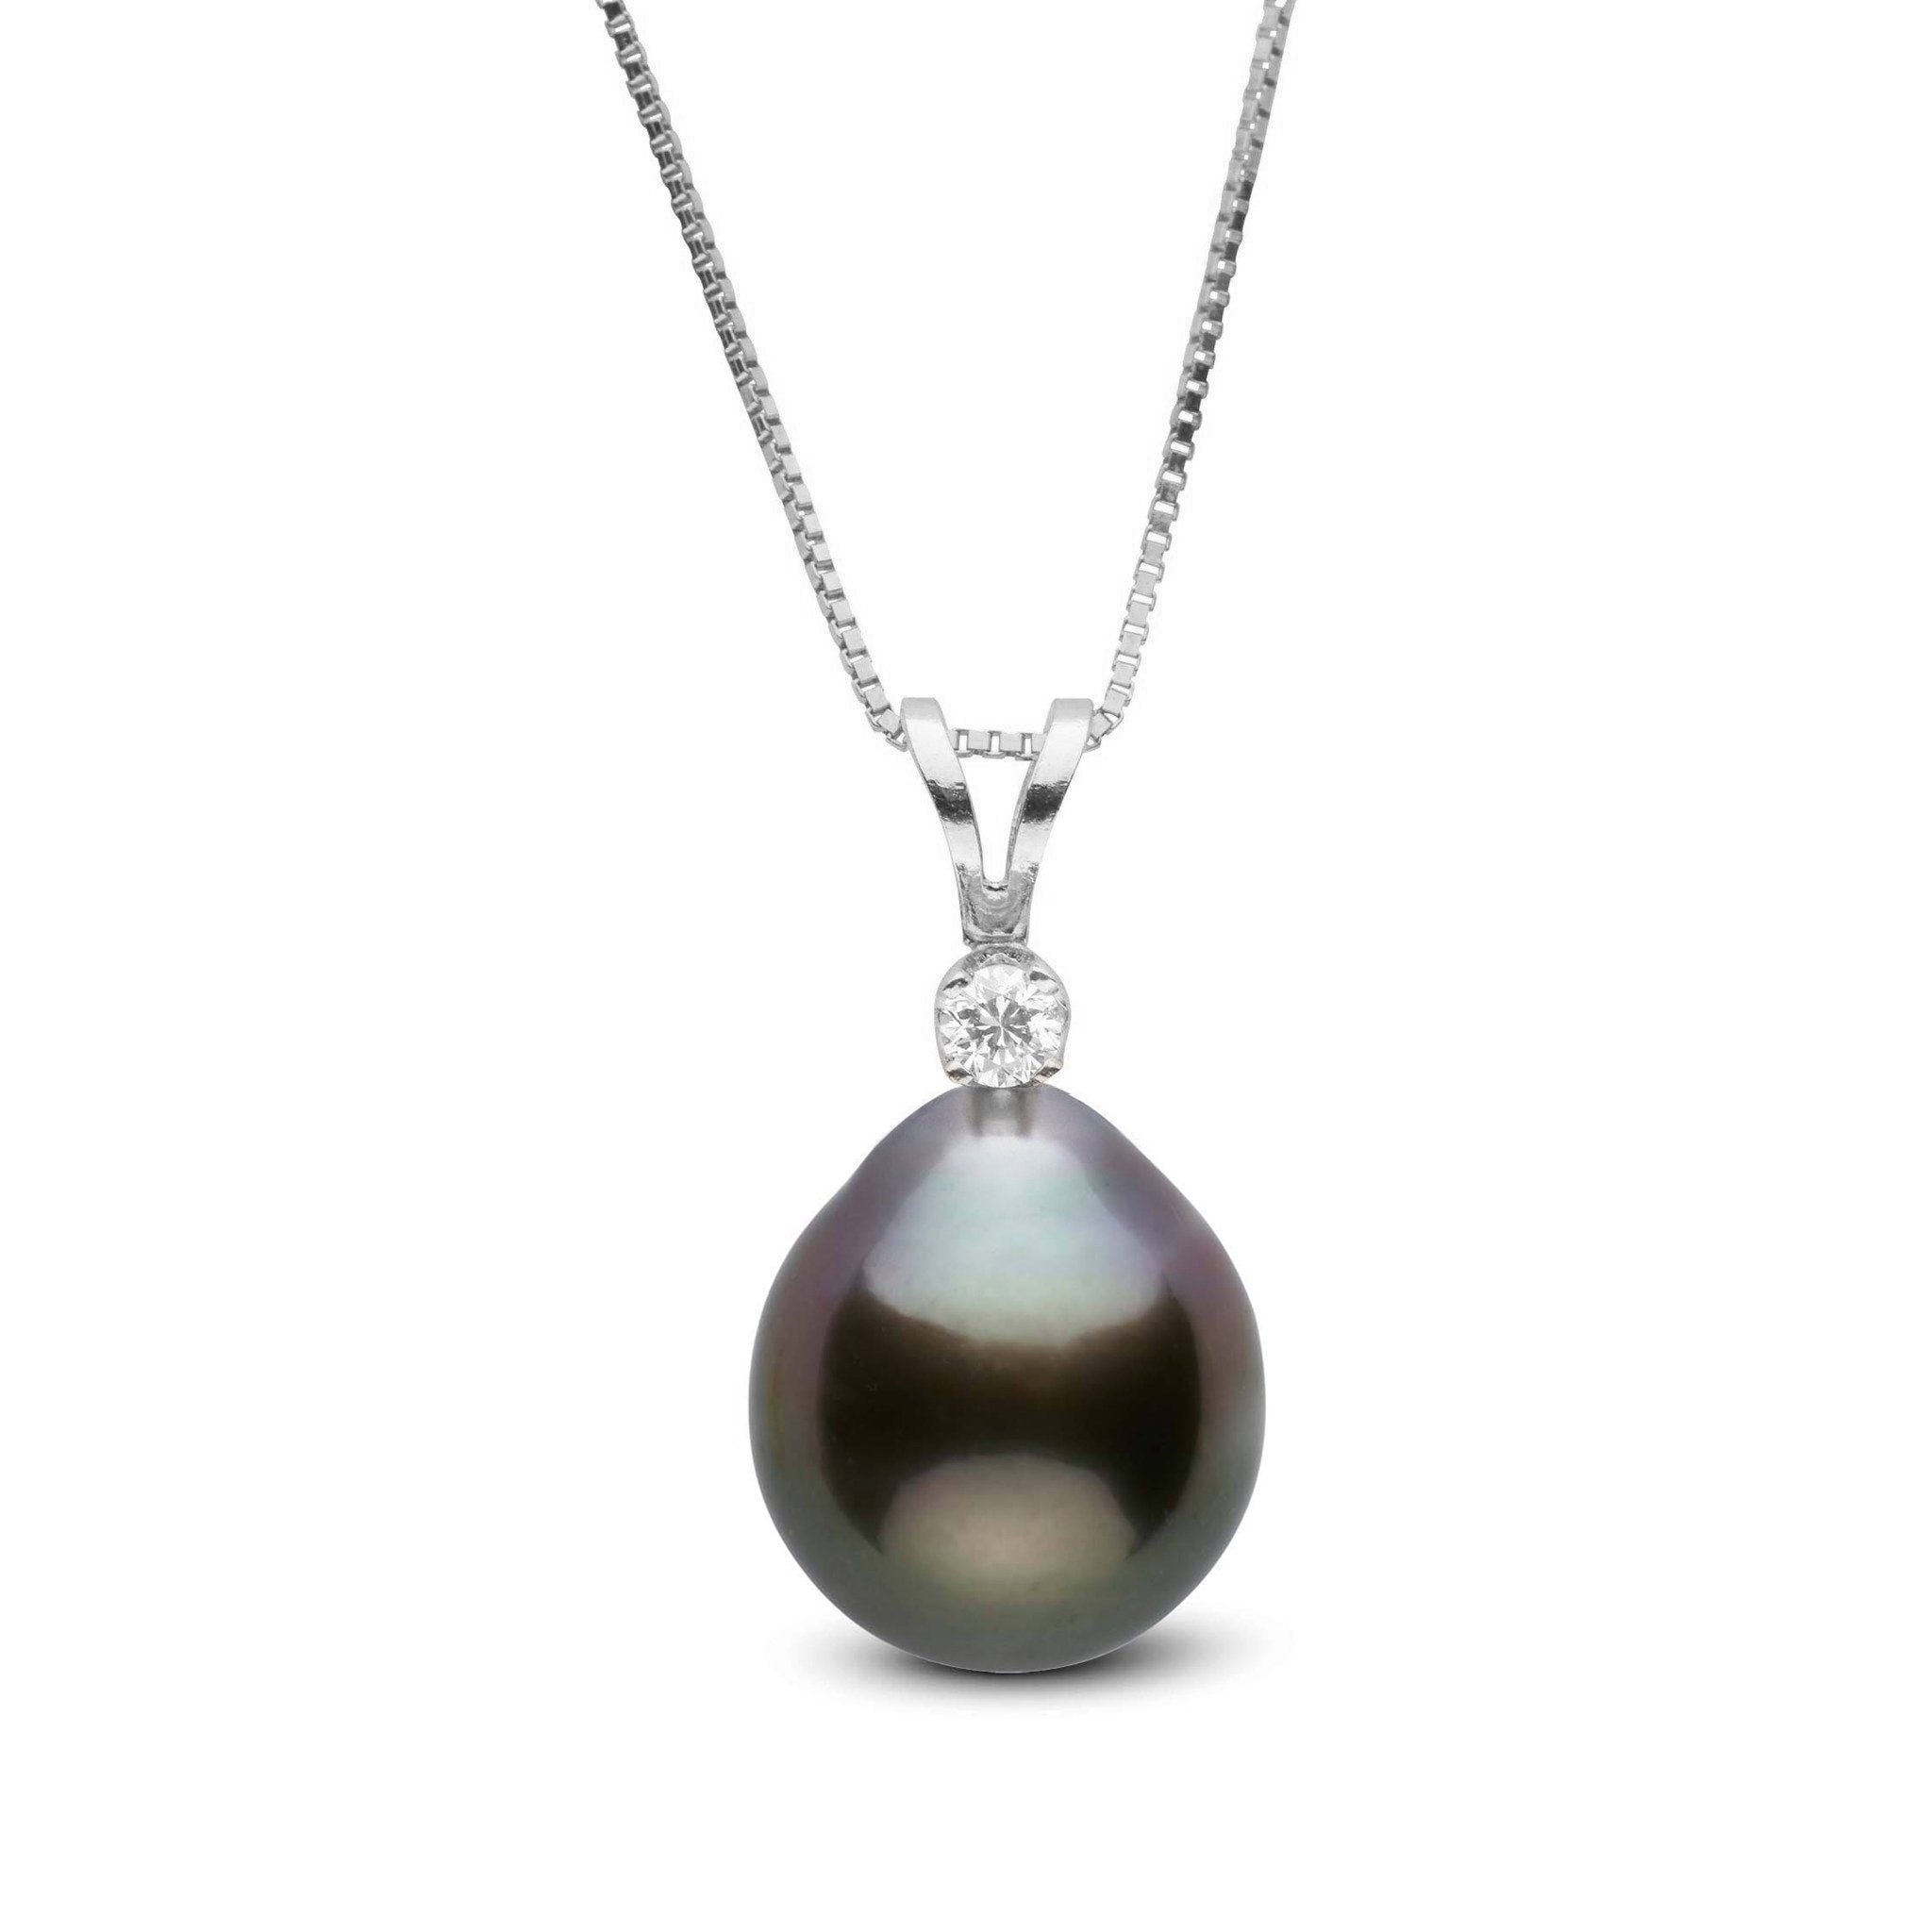 Harmony Collection 8.0-9.0 mm Drop Tahitian Pearl & Diamond Pendant